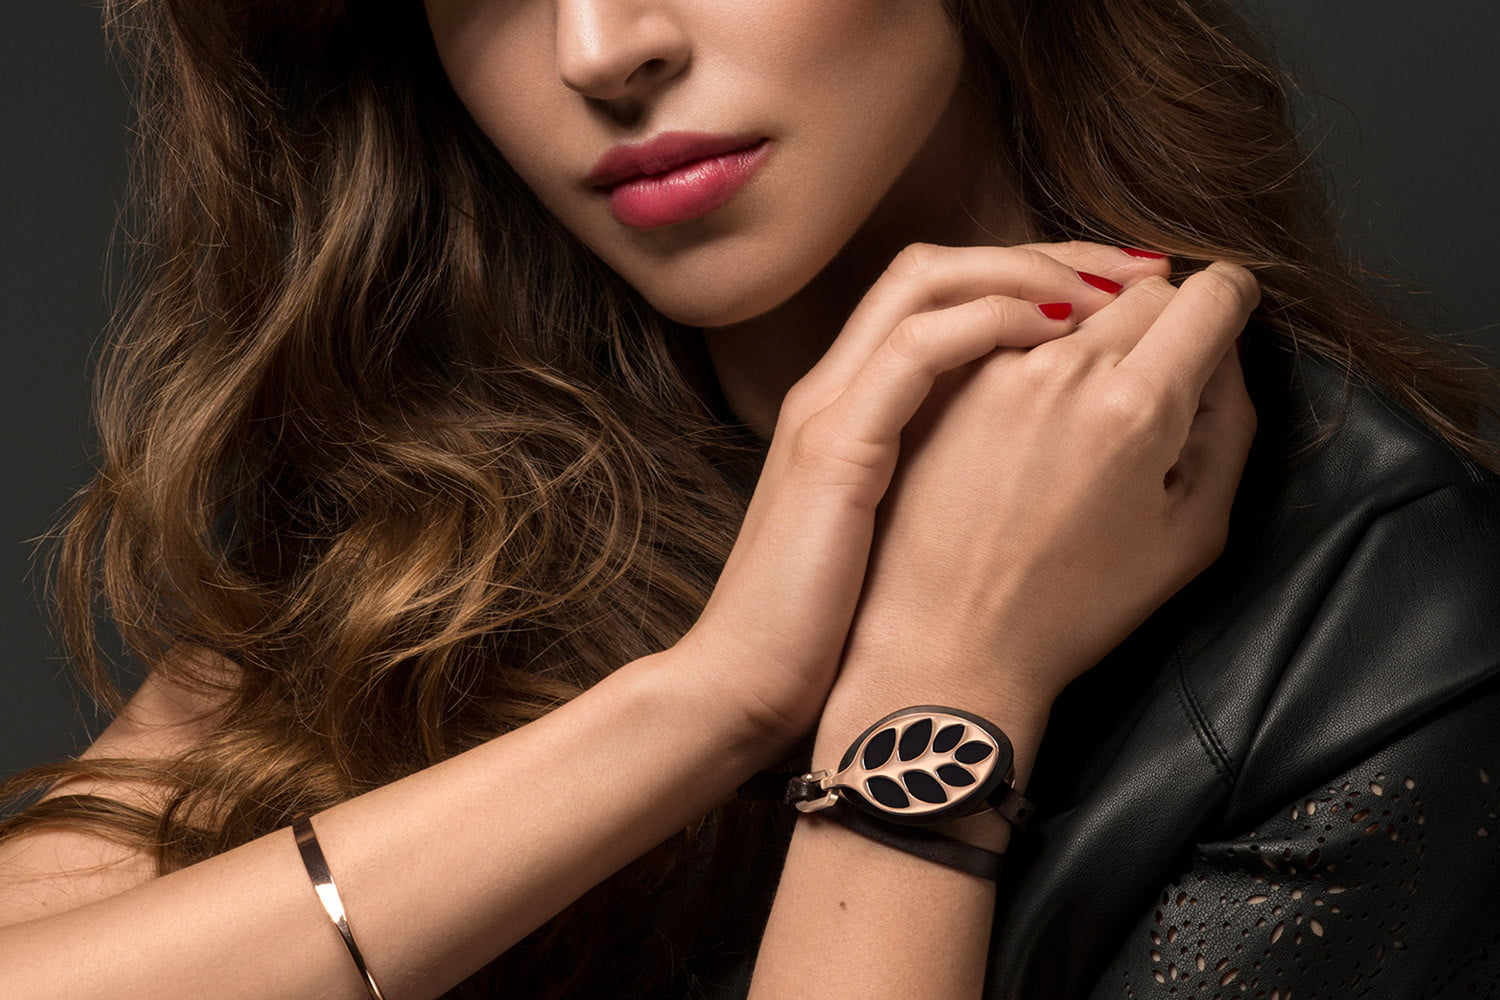 Exciting New Applications For Wearable Technology and Smart Jewellery